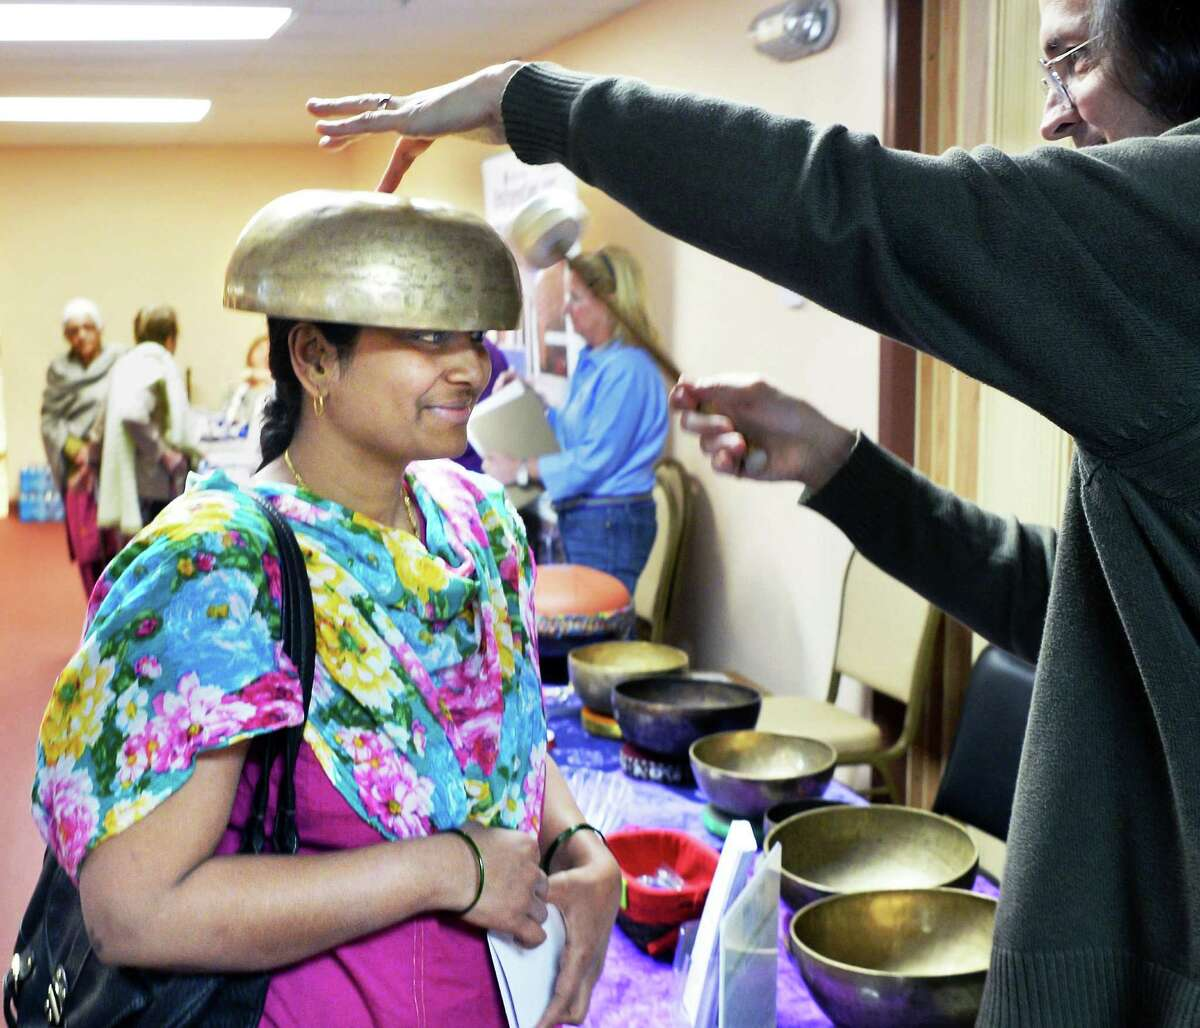 David Ciucevich administer sound meditation and healing to Rekha Jirankali, left, of Menands during the Hindu Cultural Center health fair Saturday April 30, 2016 in Colonie, NY. (John Carl D'Annibale / Times Union)